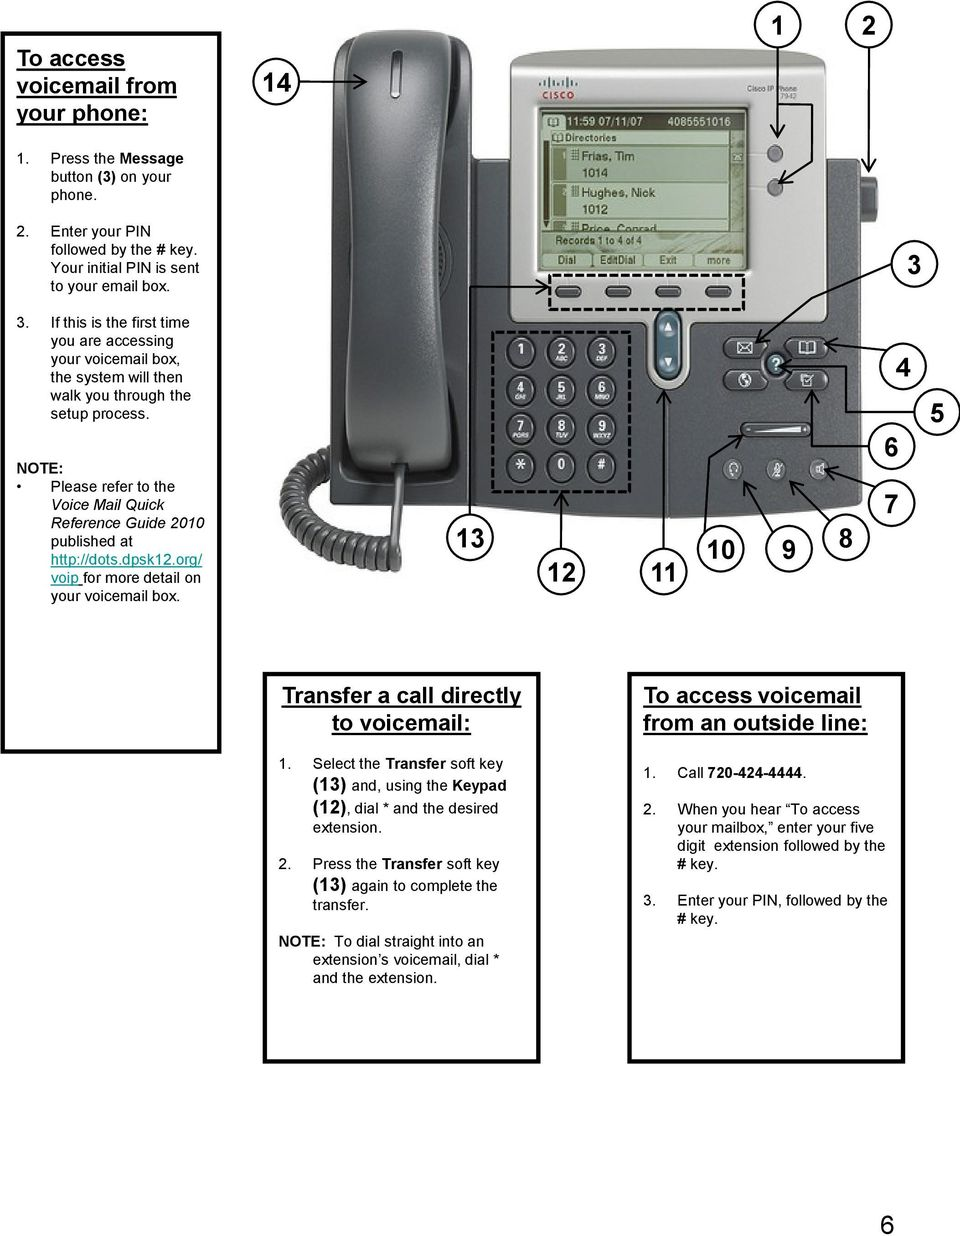 NOTE: Please refer to the Voice Mail Quick Reference Guide 20 published at http://dots.dpsk.org/ voip for more detail on your voicemail box. 1 Transfer a call directly to voicemail: 1.